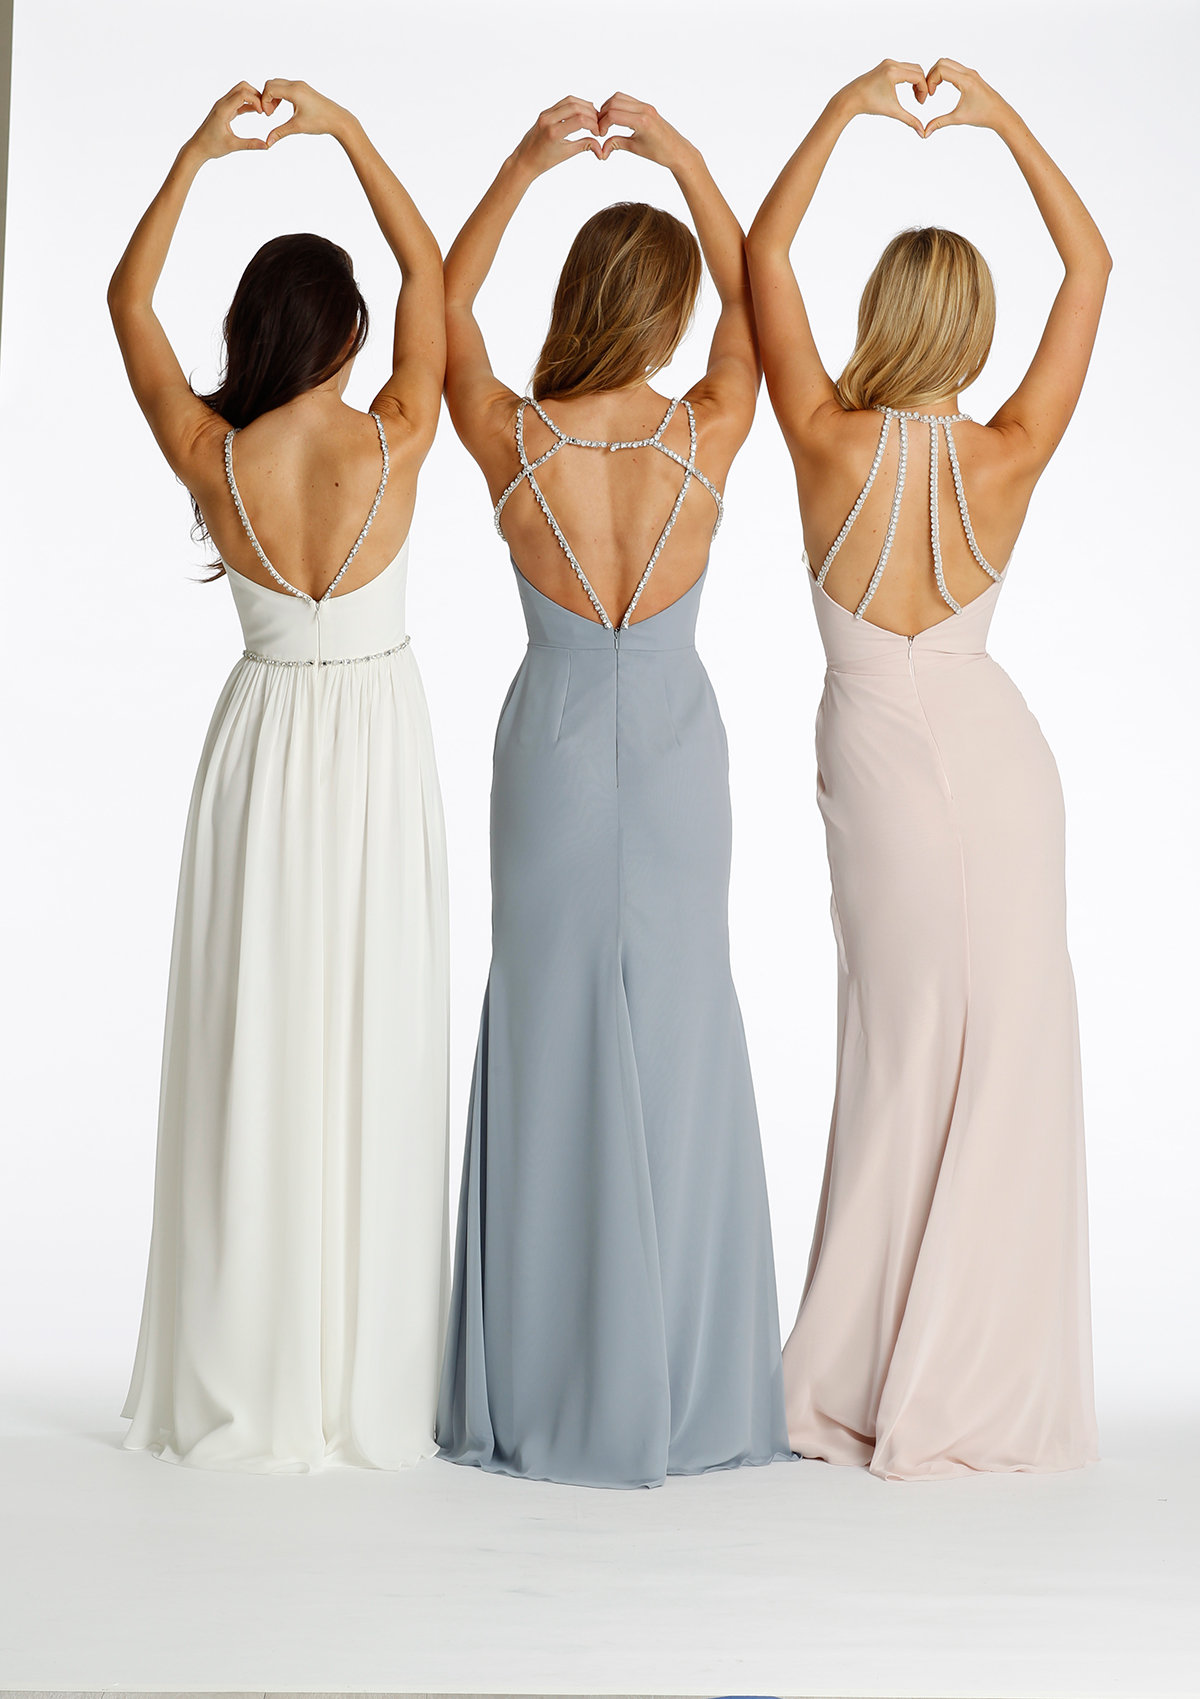 Bridesmaids special occasion dresses and bridal party gowns by style 5623 laura group view ombrellifo Gallery